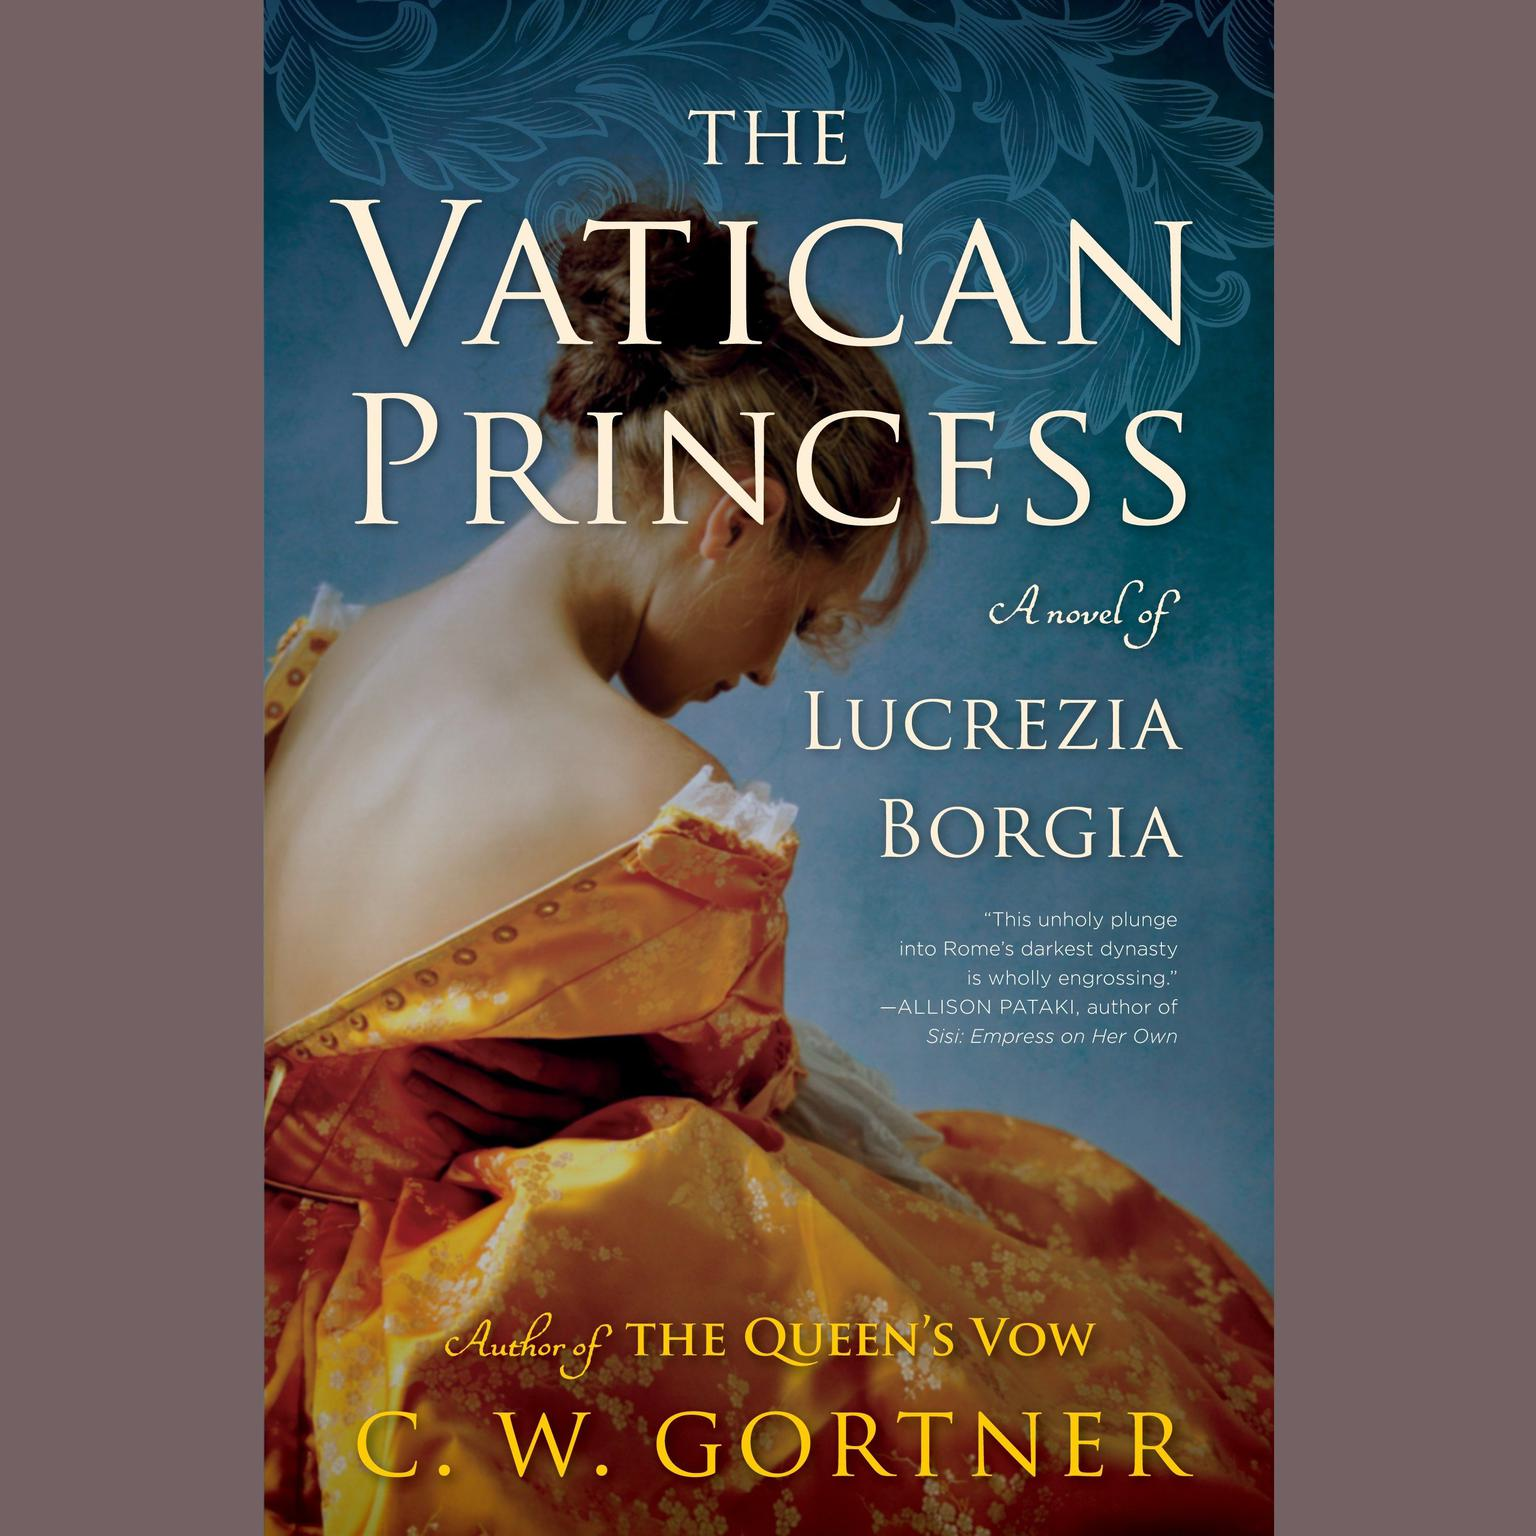 Printable The Vatican Princess: A Novel of Lucrezia Borgia Audiobook Cover Art